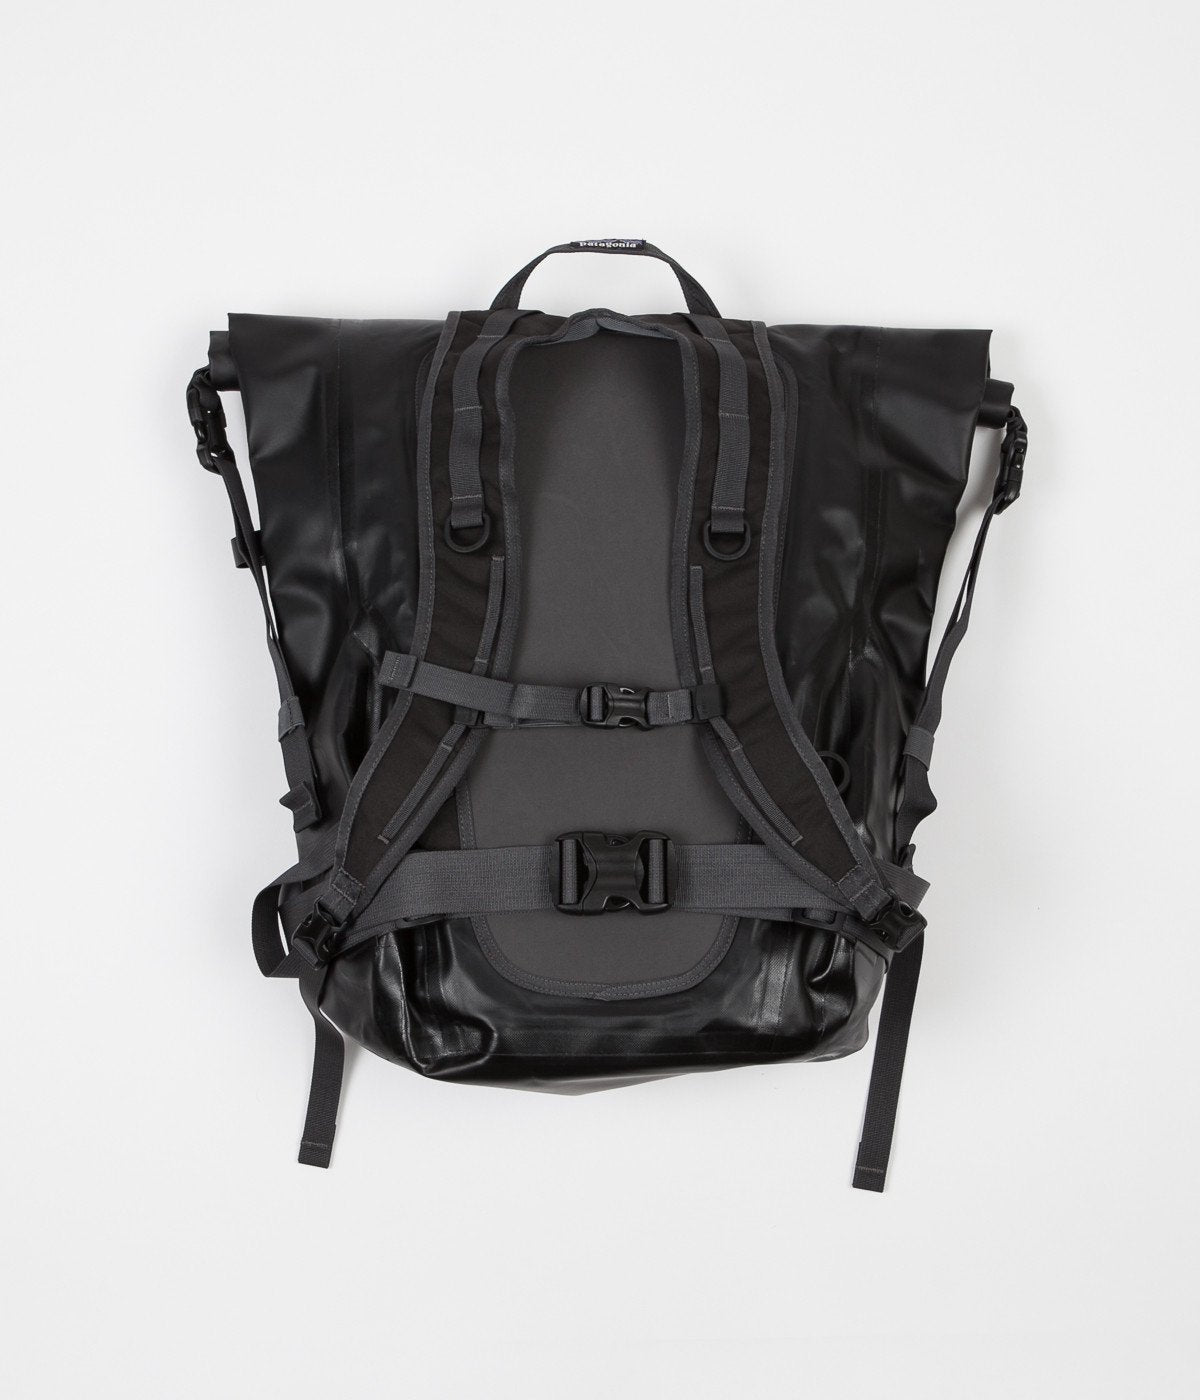 5c7a02ba2b7 Patagonia Stormfront Roll Top Backpack - Black   Always in Colour